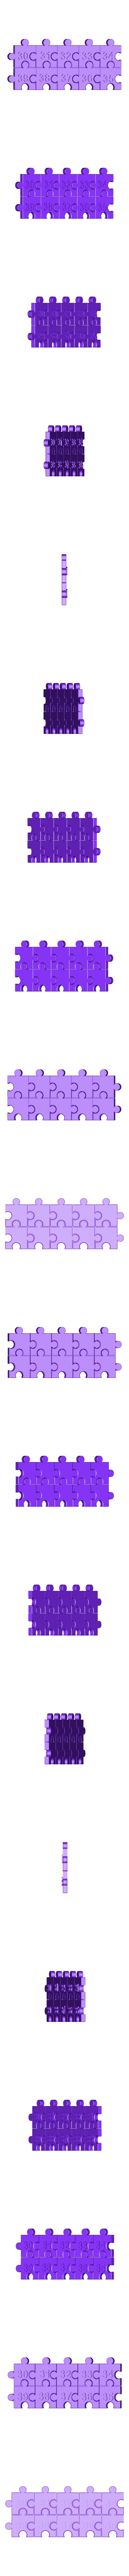 Number_30-39.stl Download free STL file Jigsaw Number Pieces, Puzzle, Sequences, Math Patterns • 3D printable design, LGBU